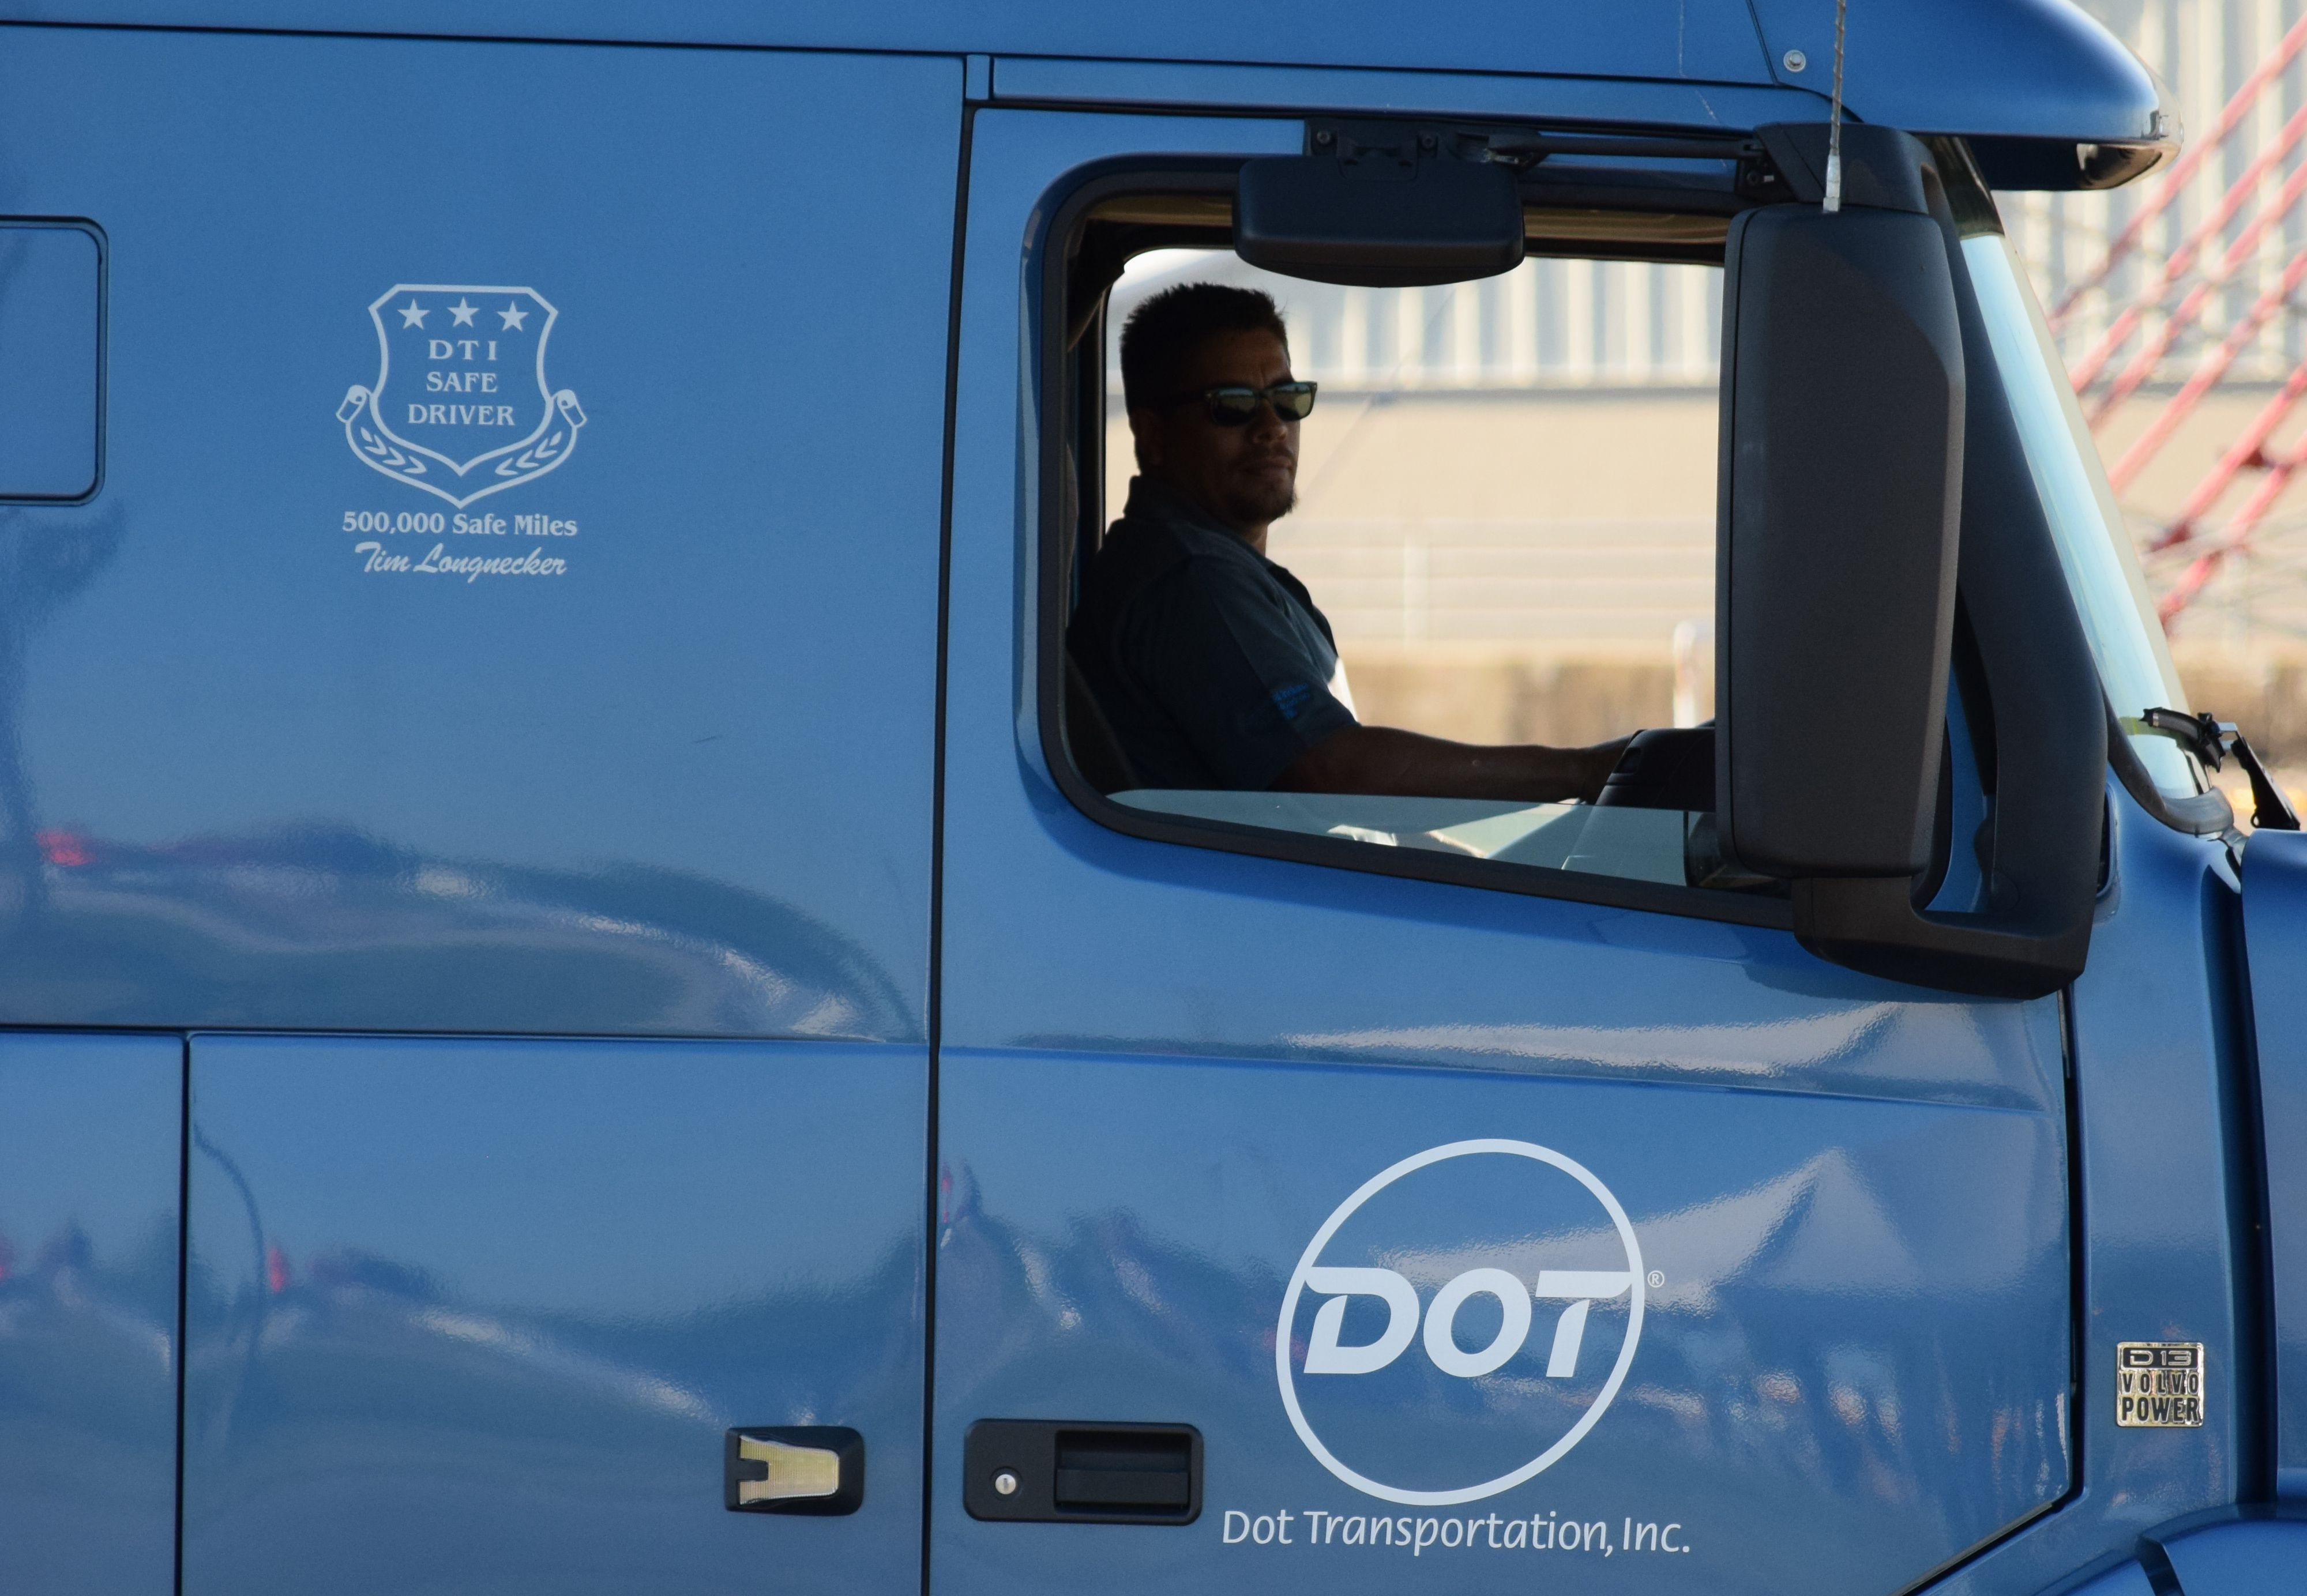 Dot's ability to accept a variety of data formats opened new revenue streams and enabled business growth.